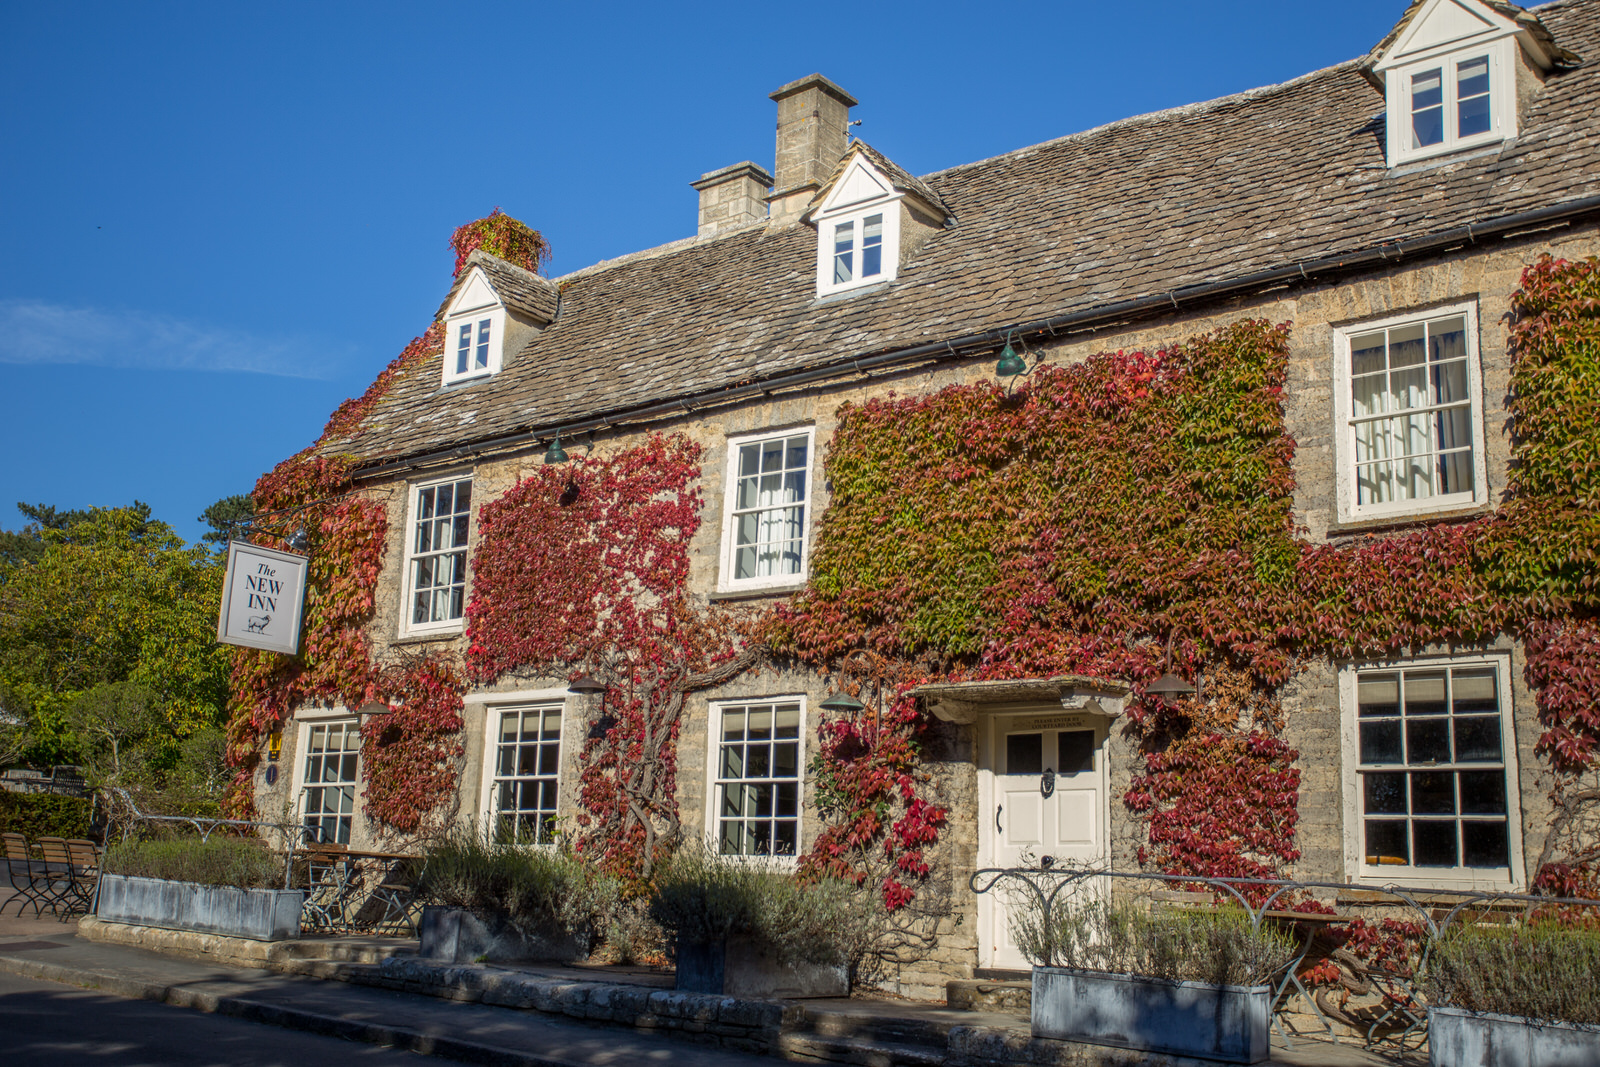 The New Inn - 15 ensuite bedrooms located five miles away from Cripps Barn.www.thenewinncoln.co.uk